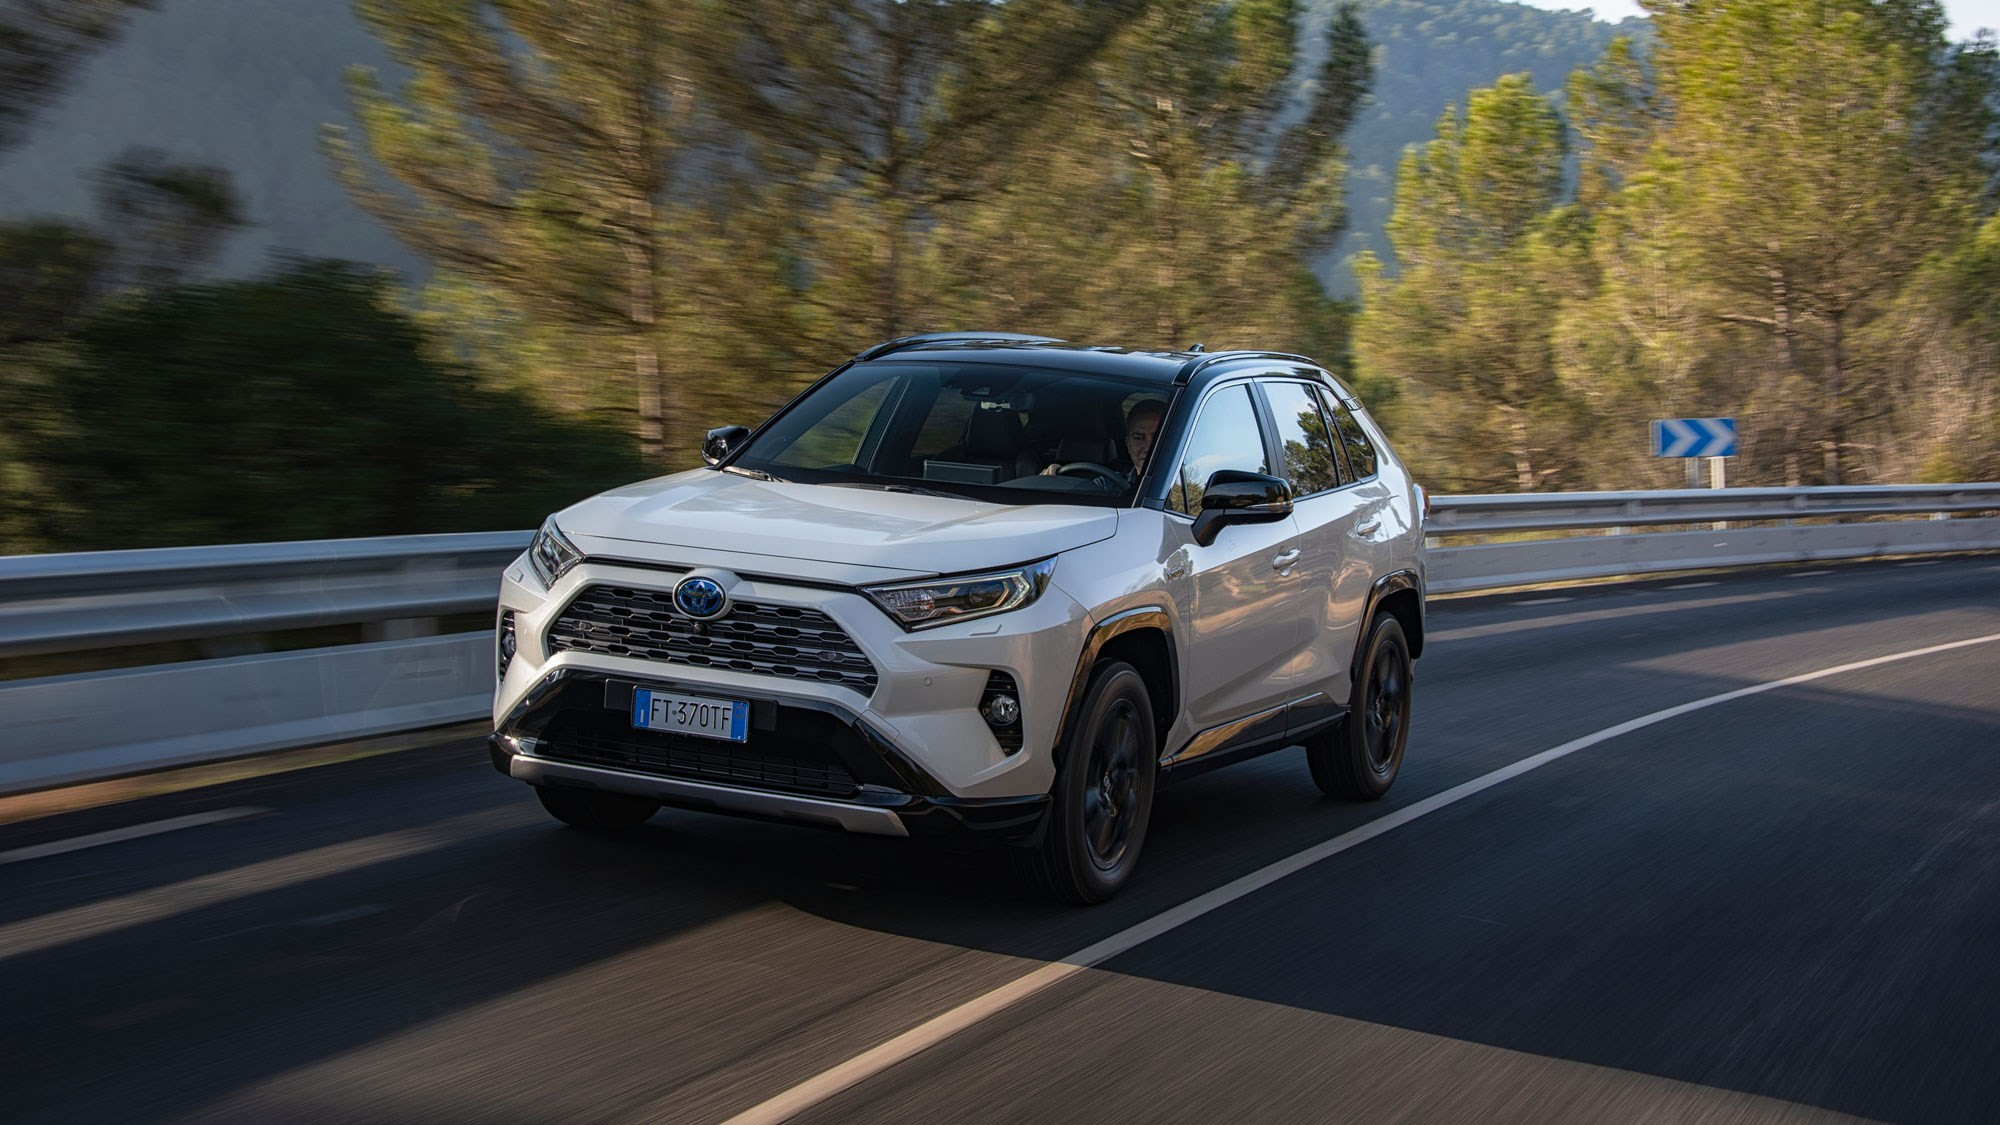 New Toyota Rav4 Suv Reviewed The Is Hybrid Only With No Plans For A Sel